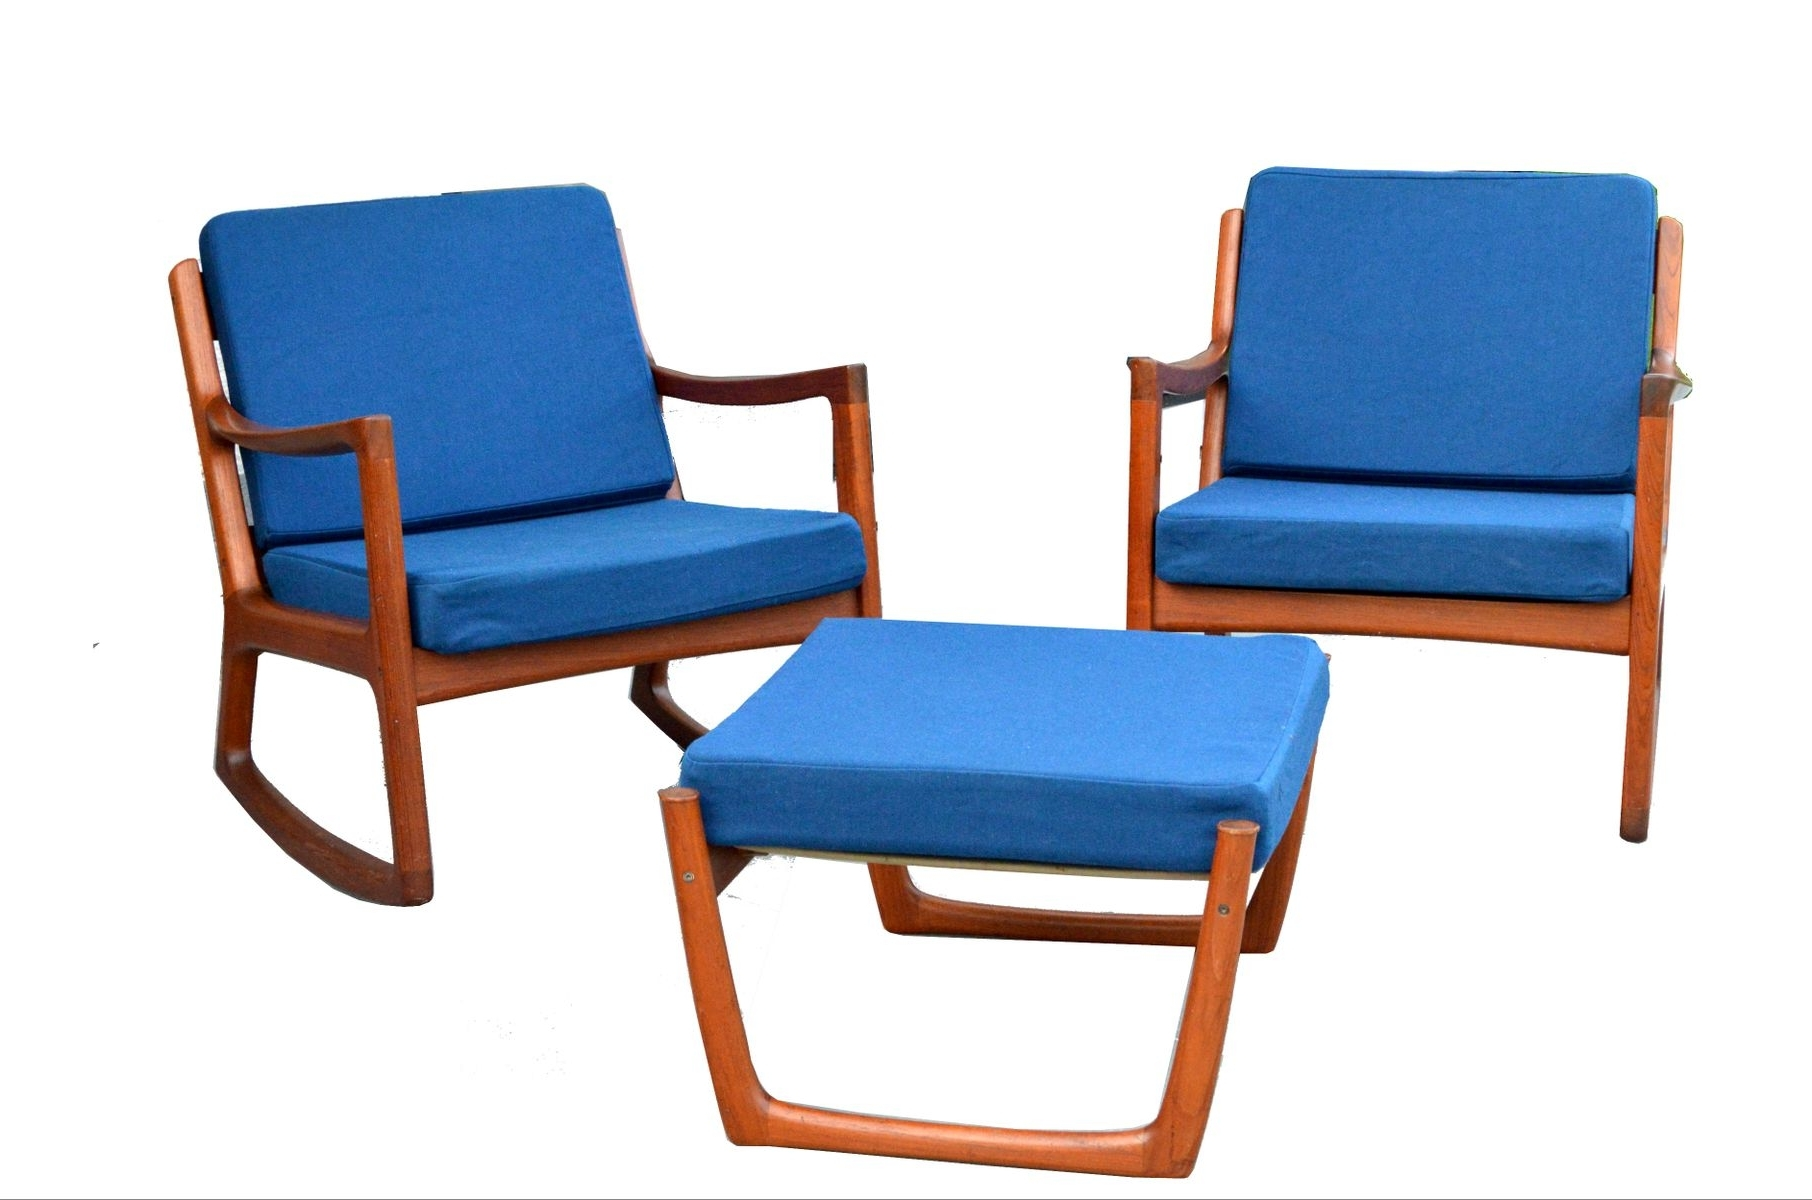 2 Senator Rocking Chairs & 1 Footstoolole Wanscher For France Intended For Most Recent Rocking Chairs With Footstool (View 13 of 20)